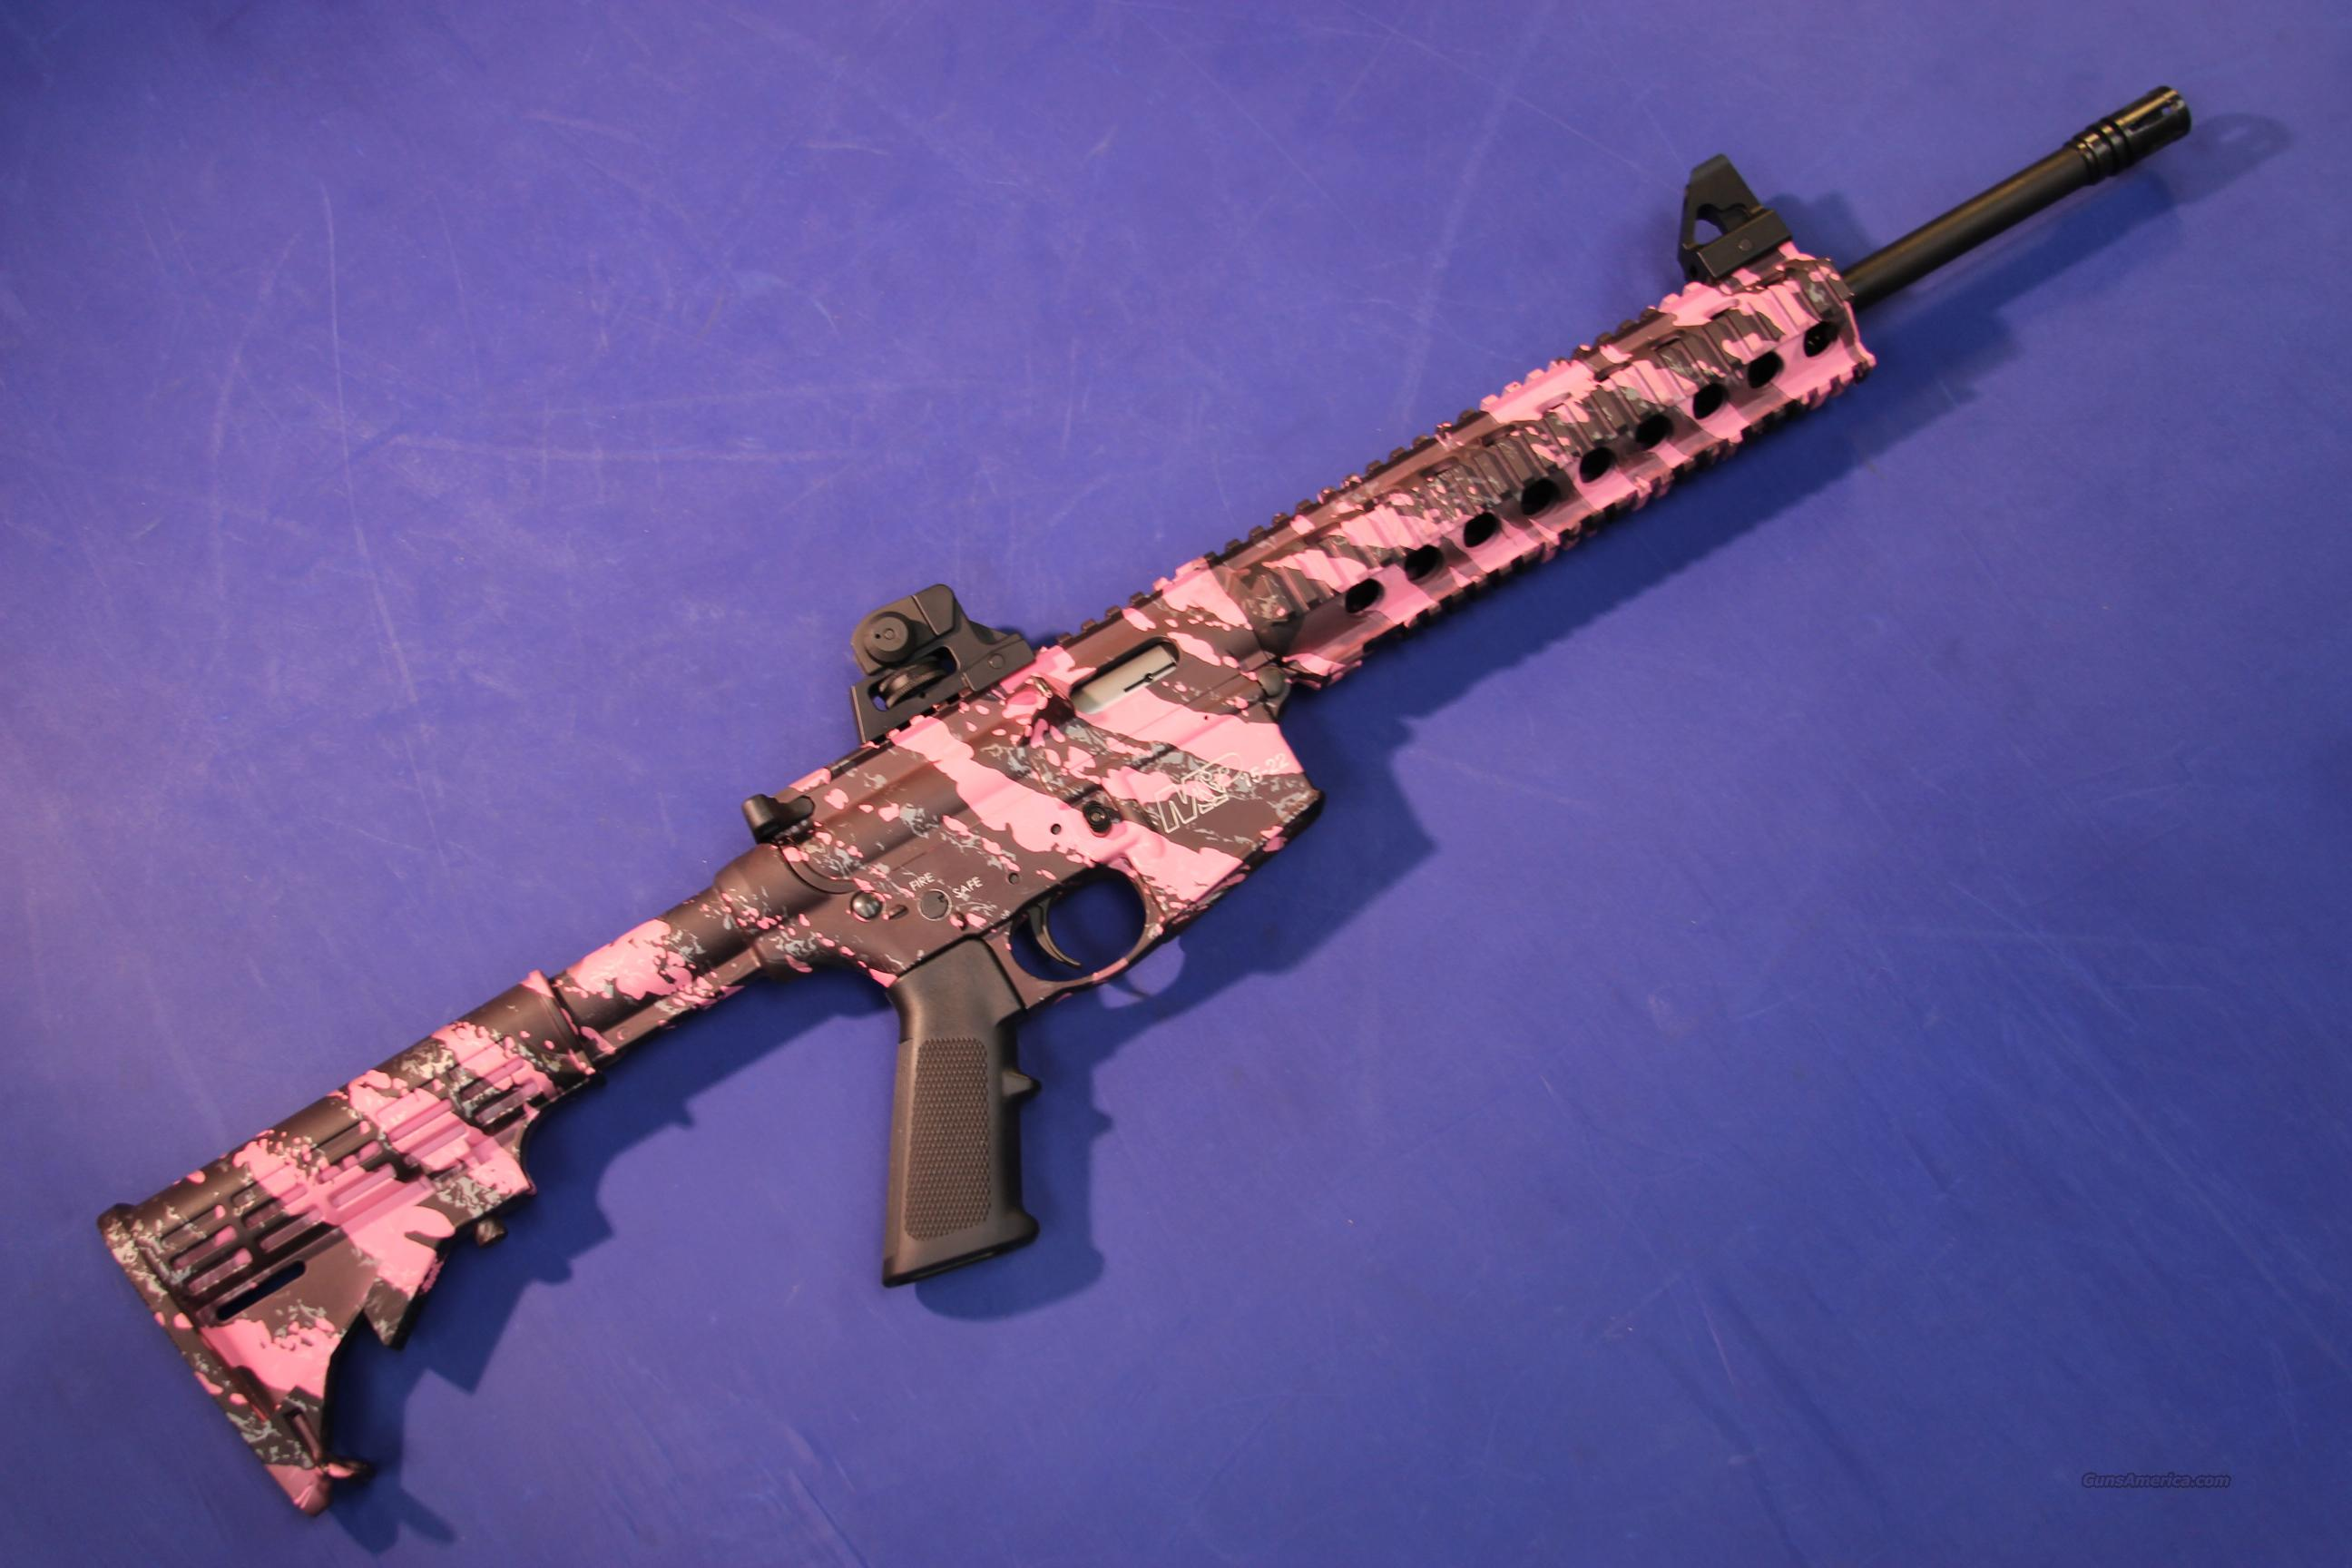 SMITH & WESSON M&P-15 22 PINK PLATINUM .22 LR  Guns > Rifles > Smith & Wesson Rifles > M&P